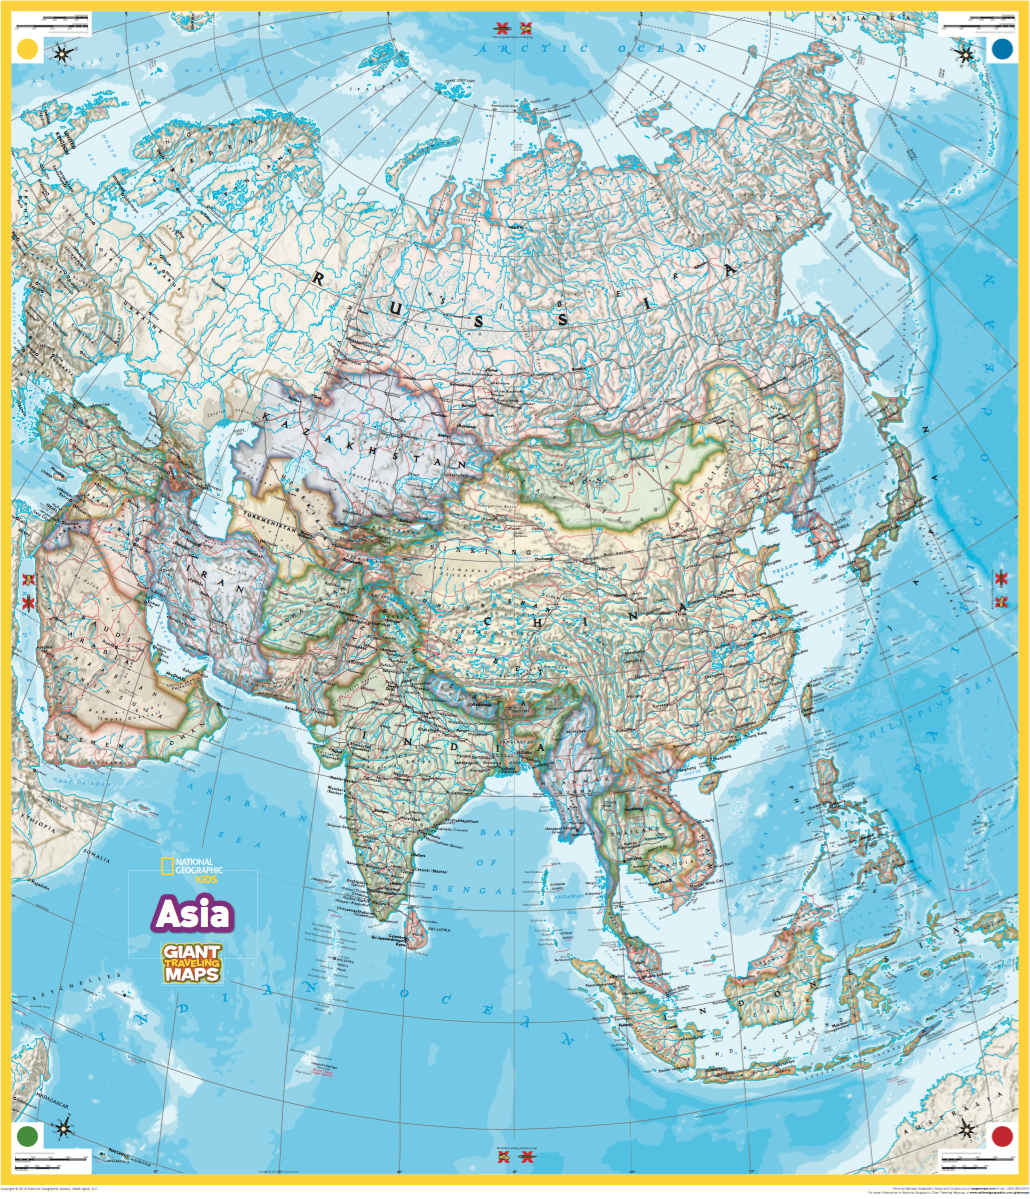 Giant Asia Map RHODE ISLAND GEOGRAPHY EDUCATION ALLIANCE - Asia maps